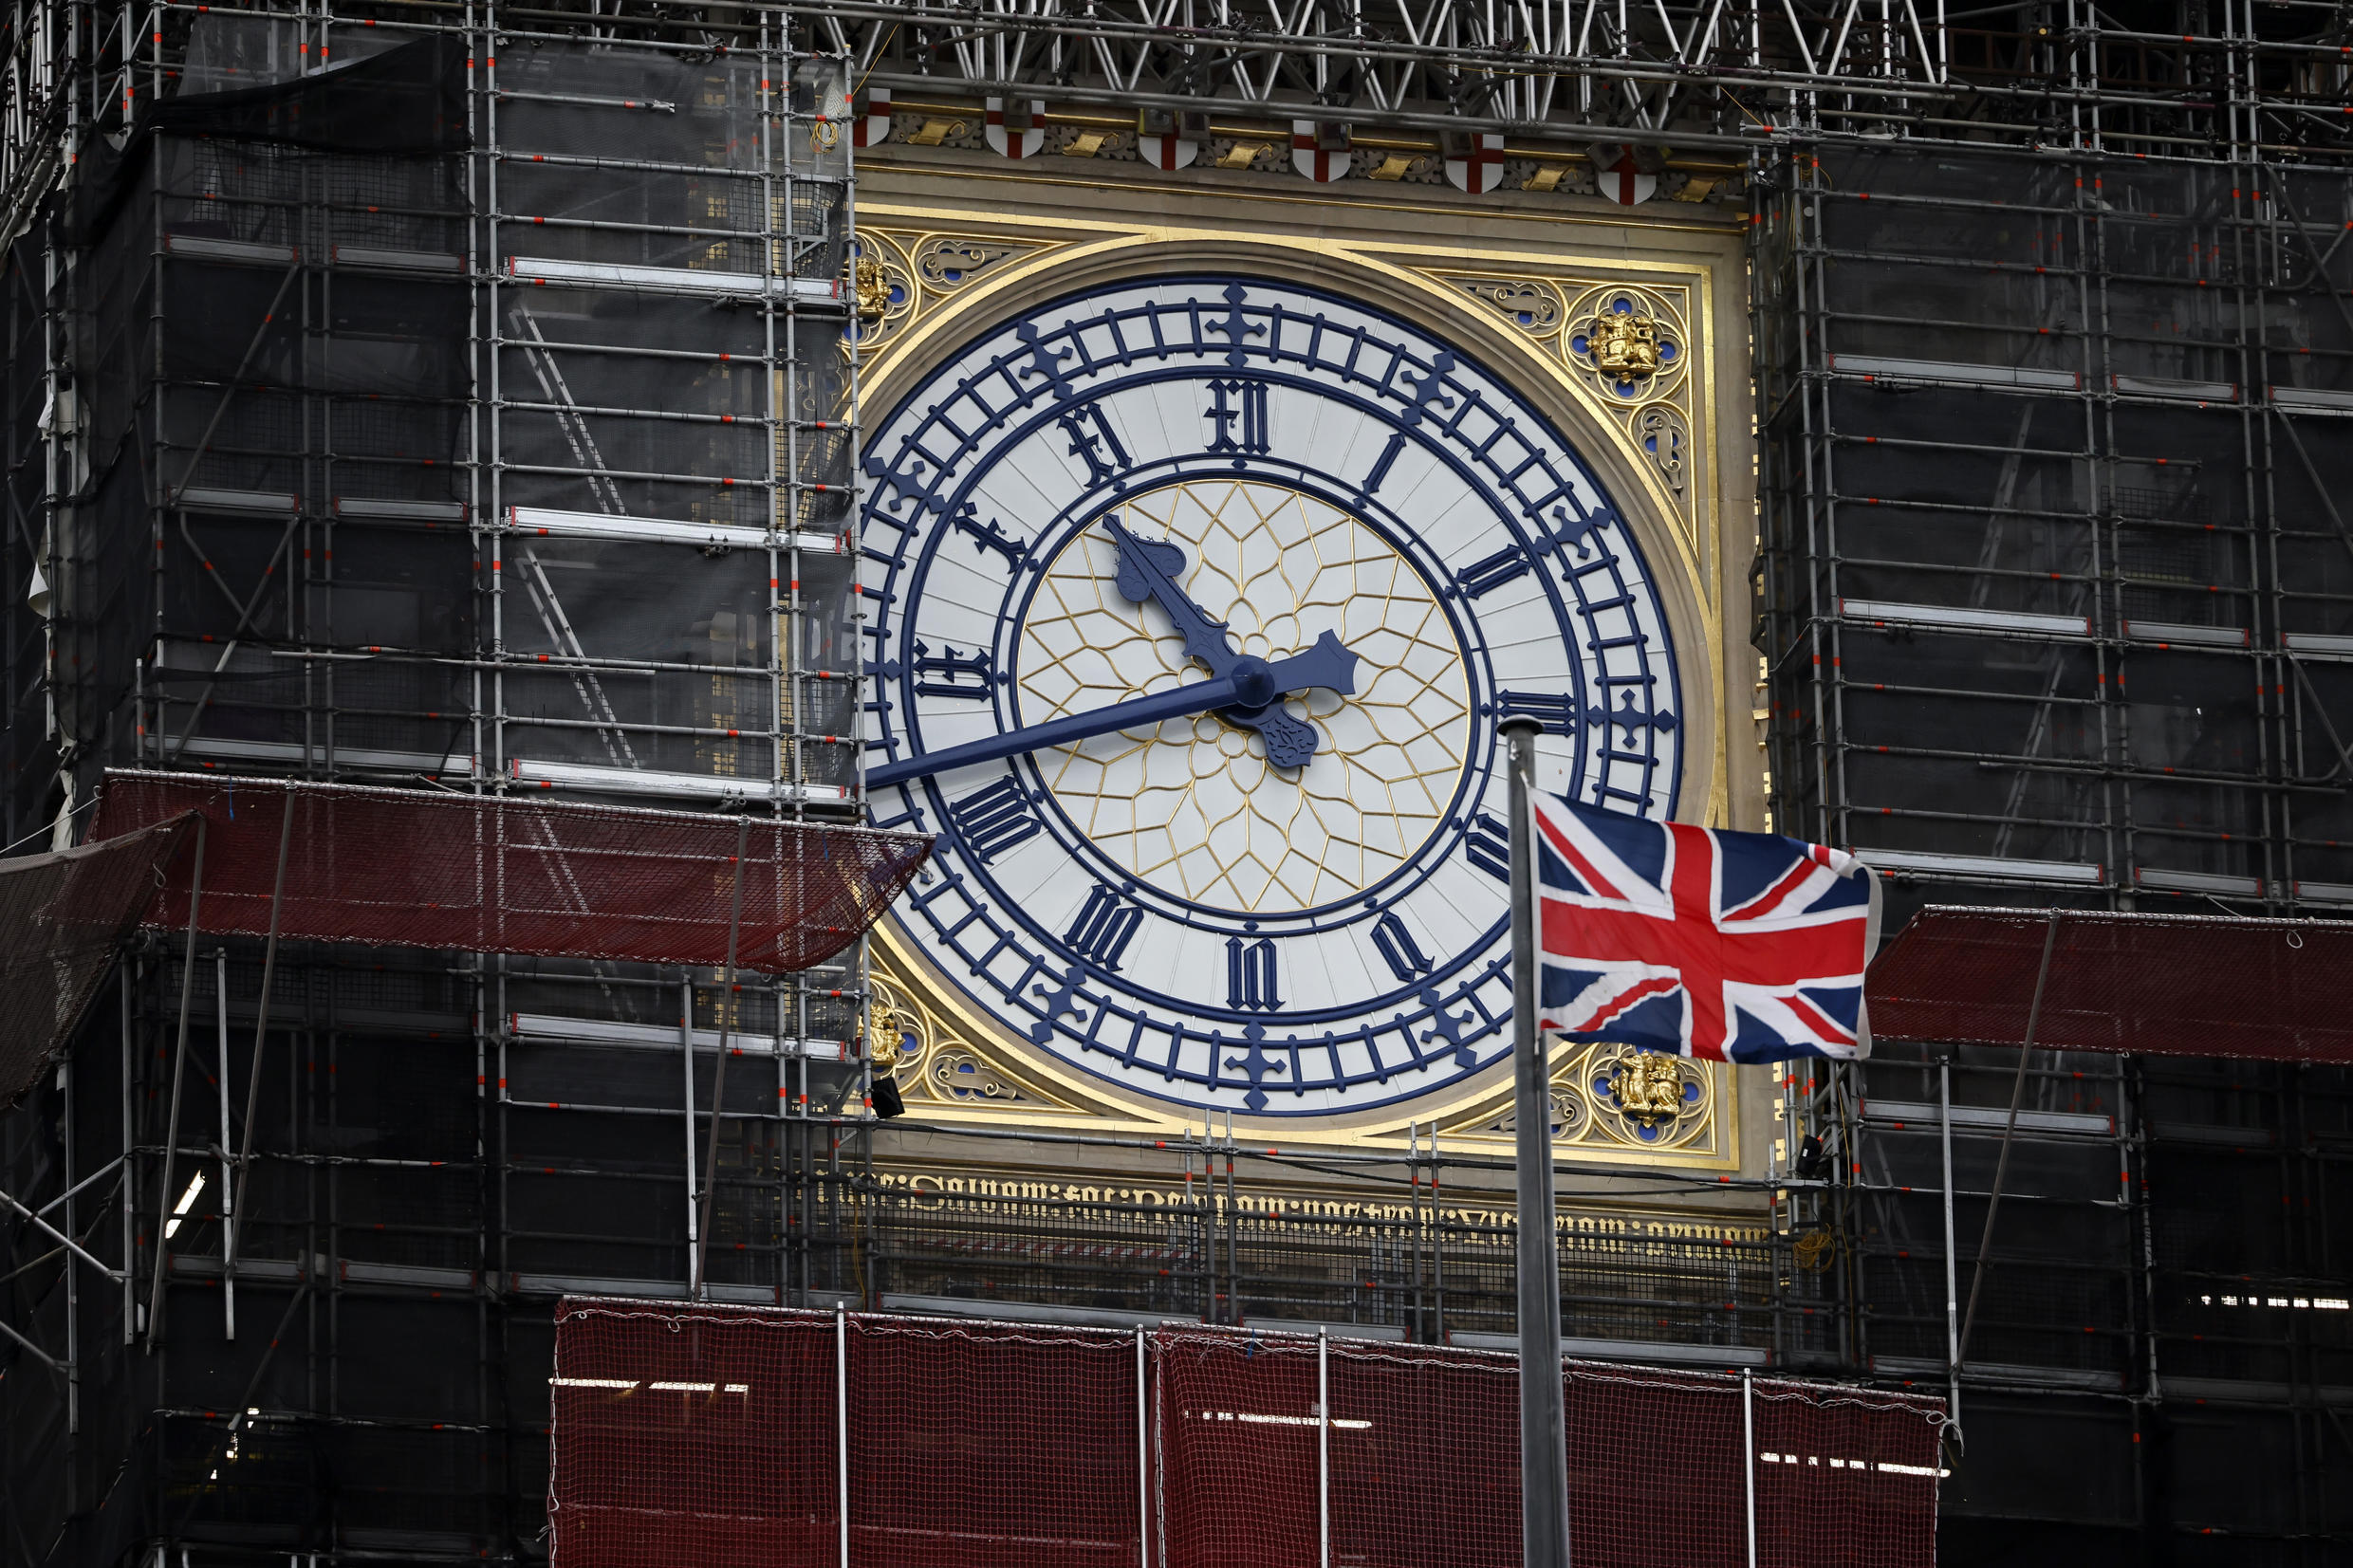 The clock is ticking on Brexit trade talks, with Britain and the European Union agreeing to 'go the extra mile' to find a resolution